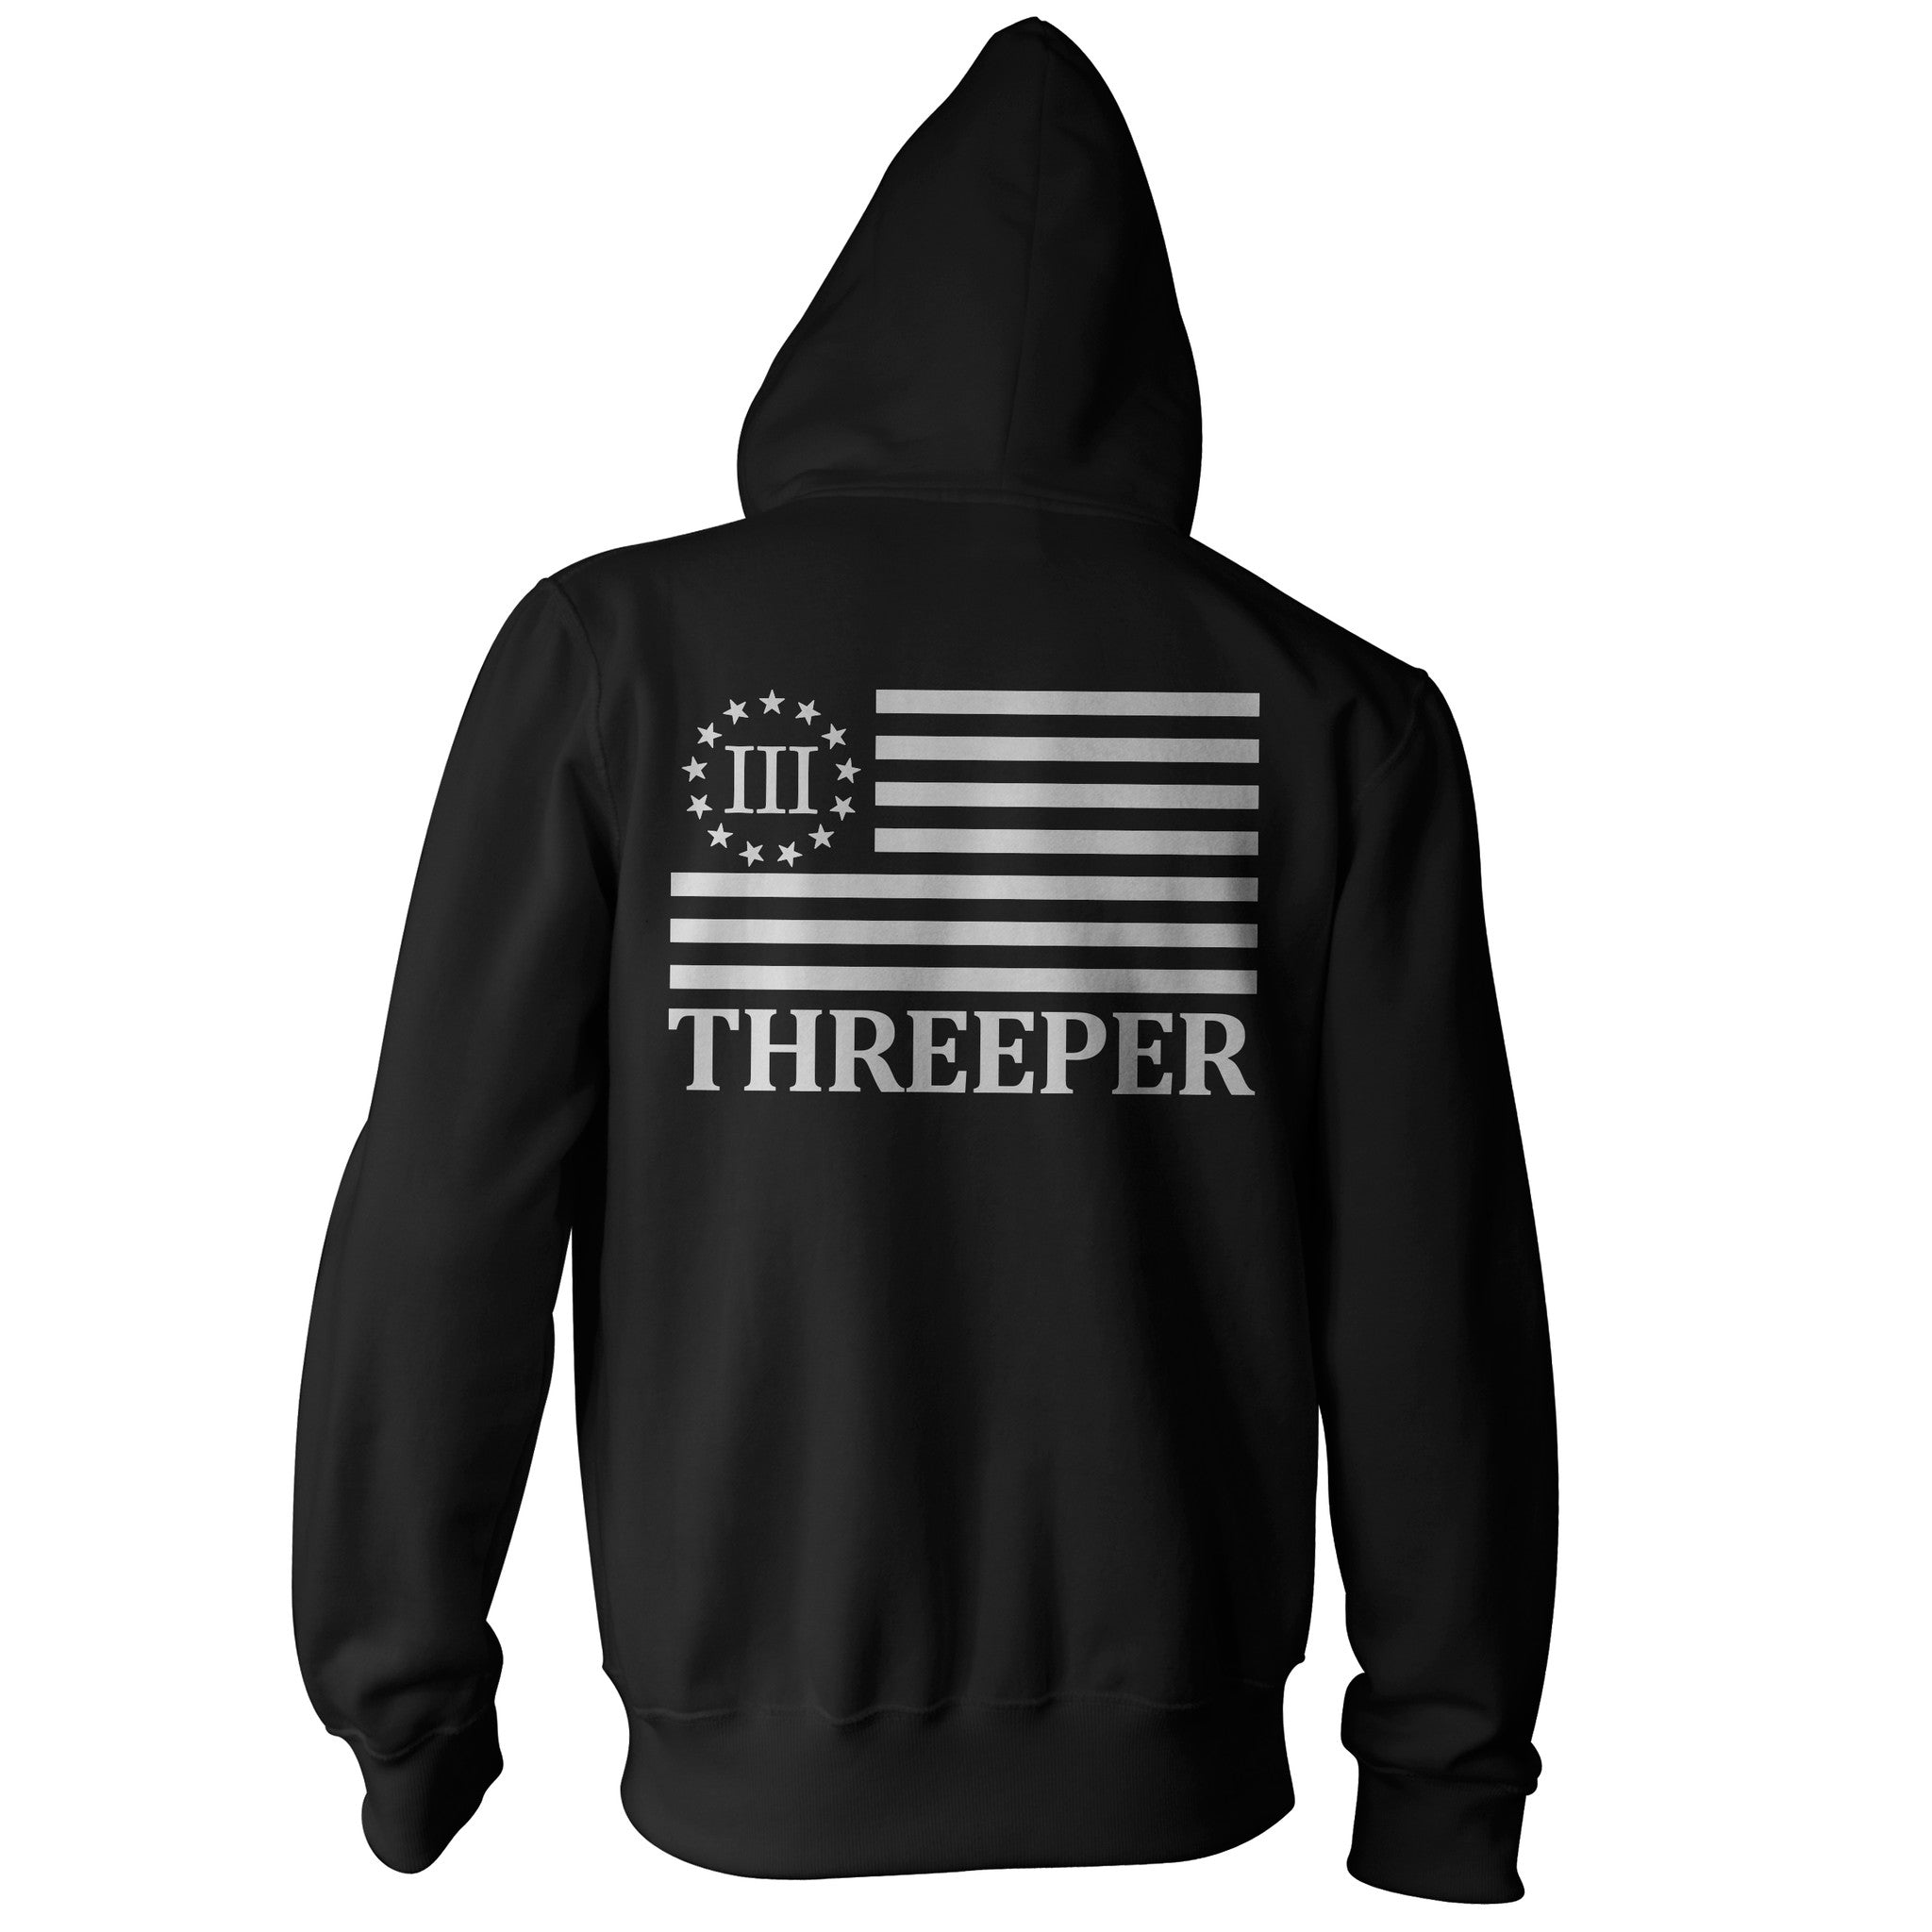 Zip Up Hooded Sweatshirt - The Threeper